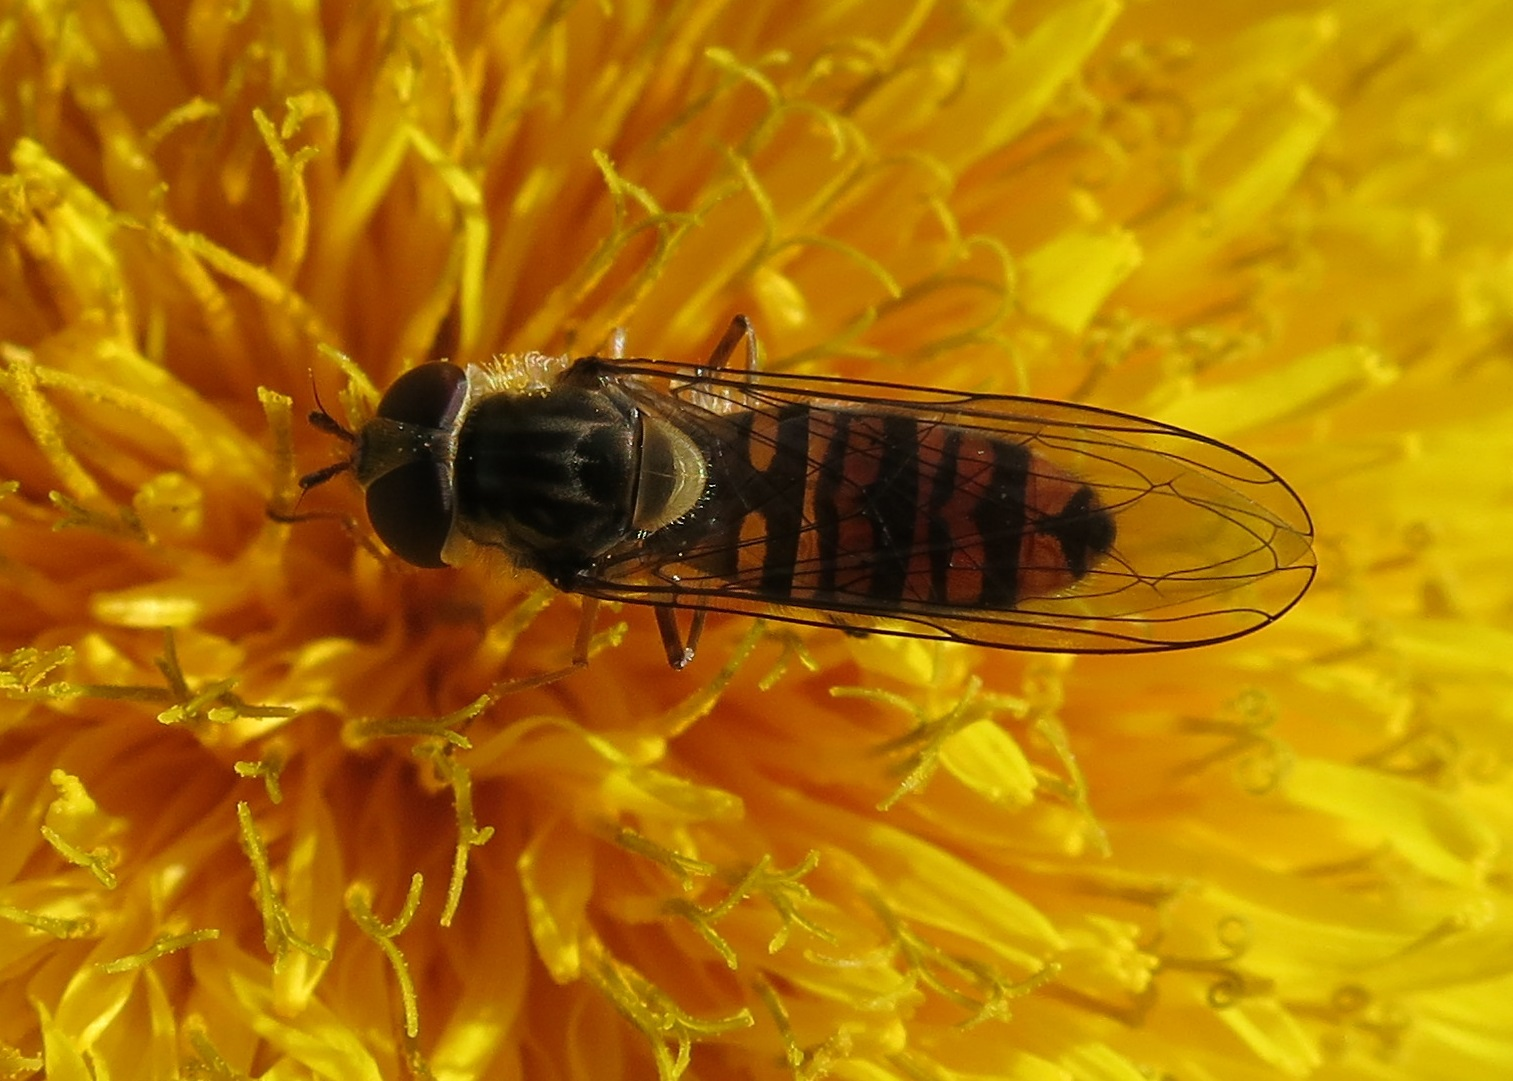 Marmalade Hoverfly (Episyrphus balteatus) with wings shut across its back on a dandelion type flower. (Maybe even a dandelion!)